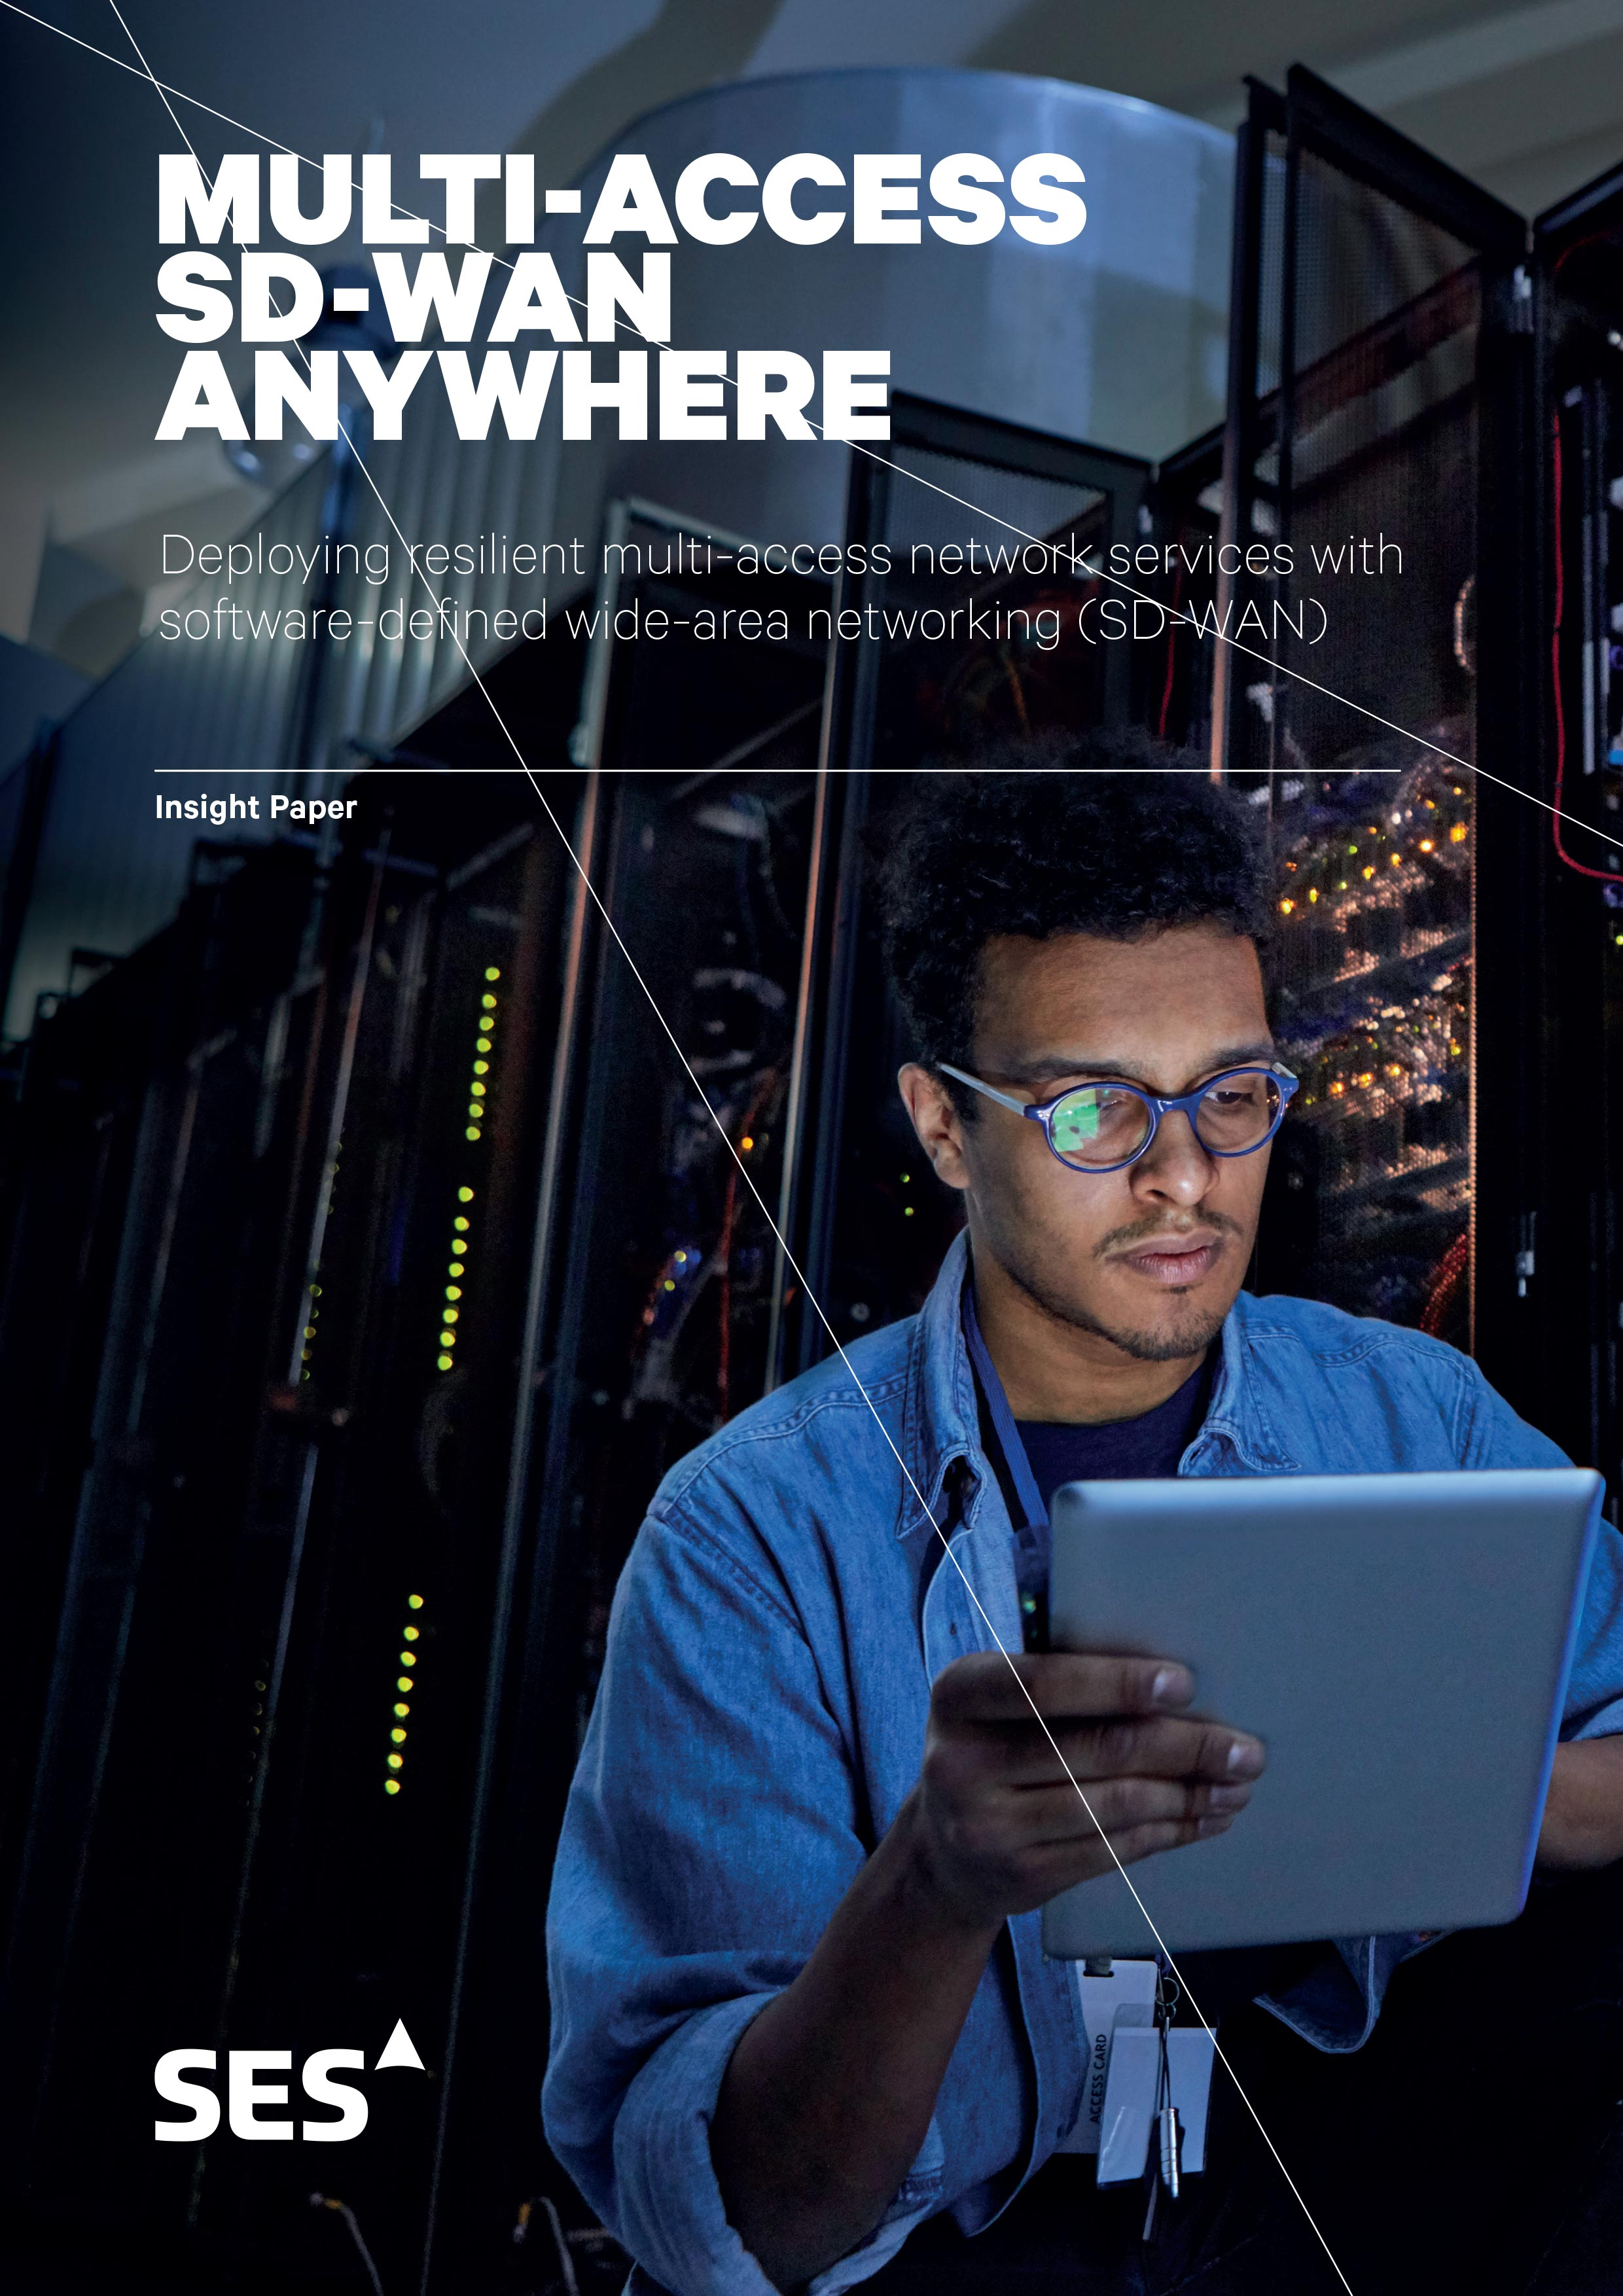 SES_SD-WAN_Insight_Paper_cover_image